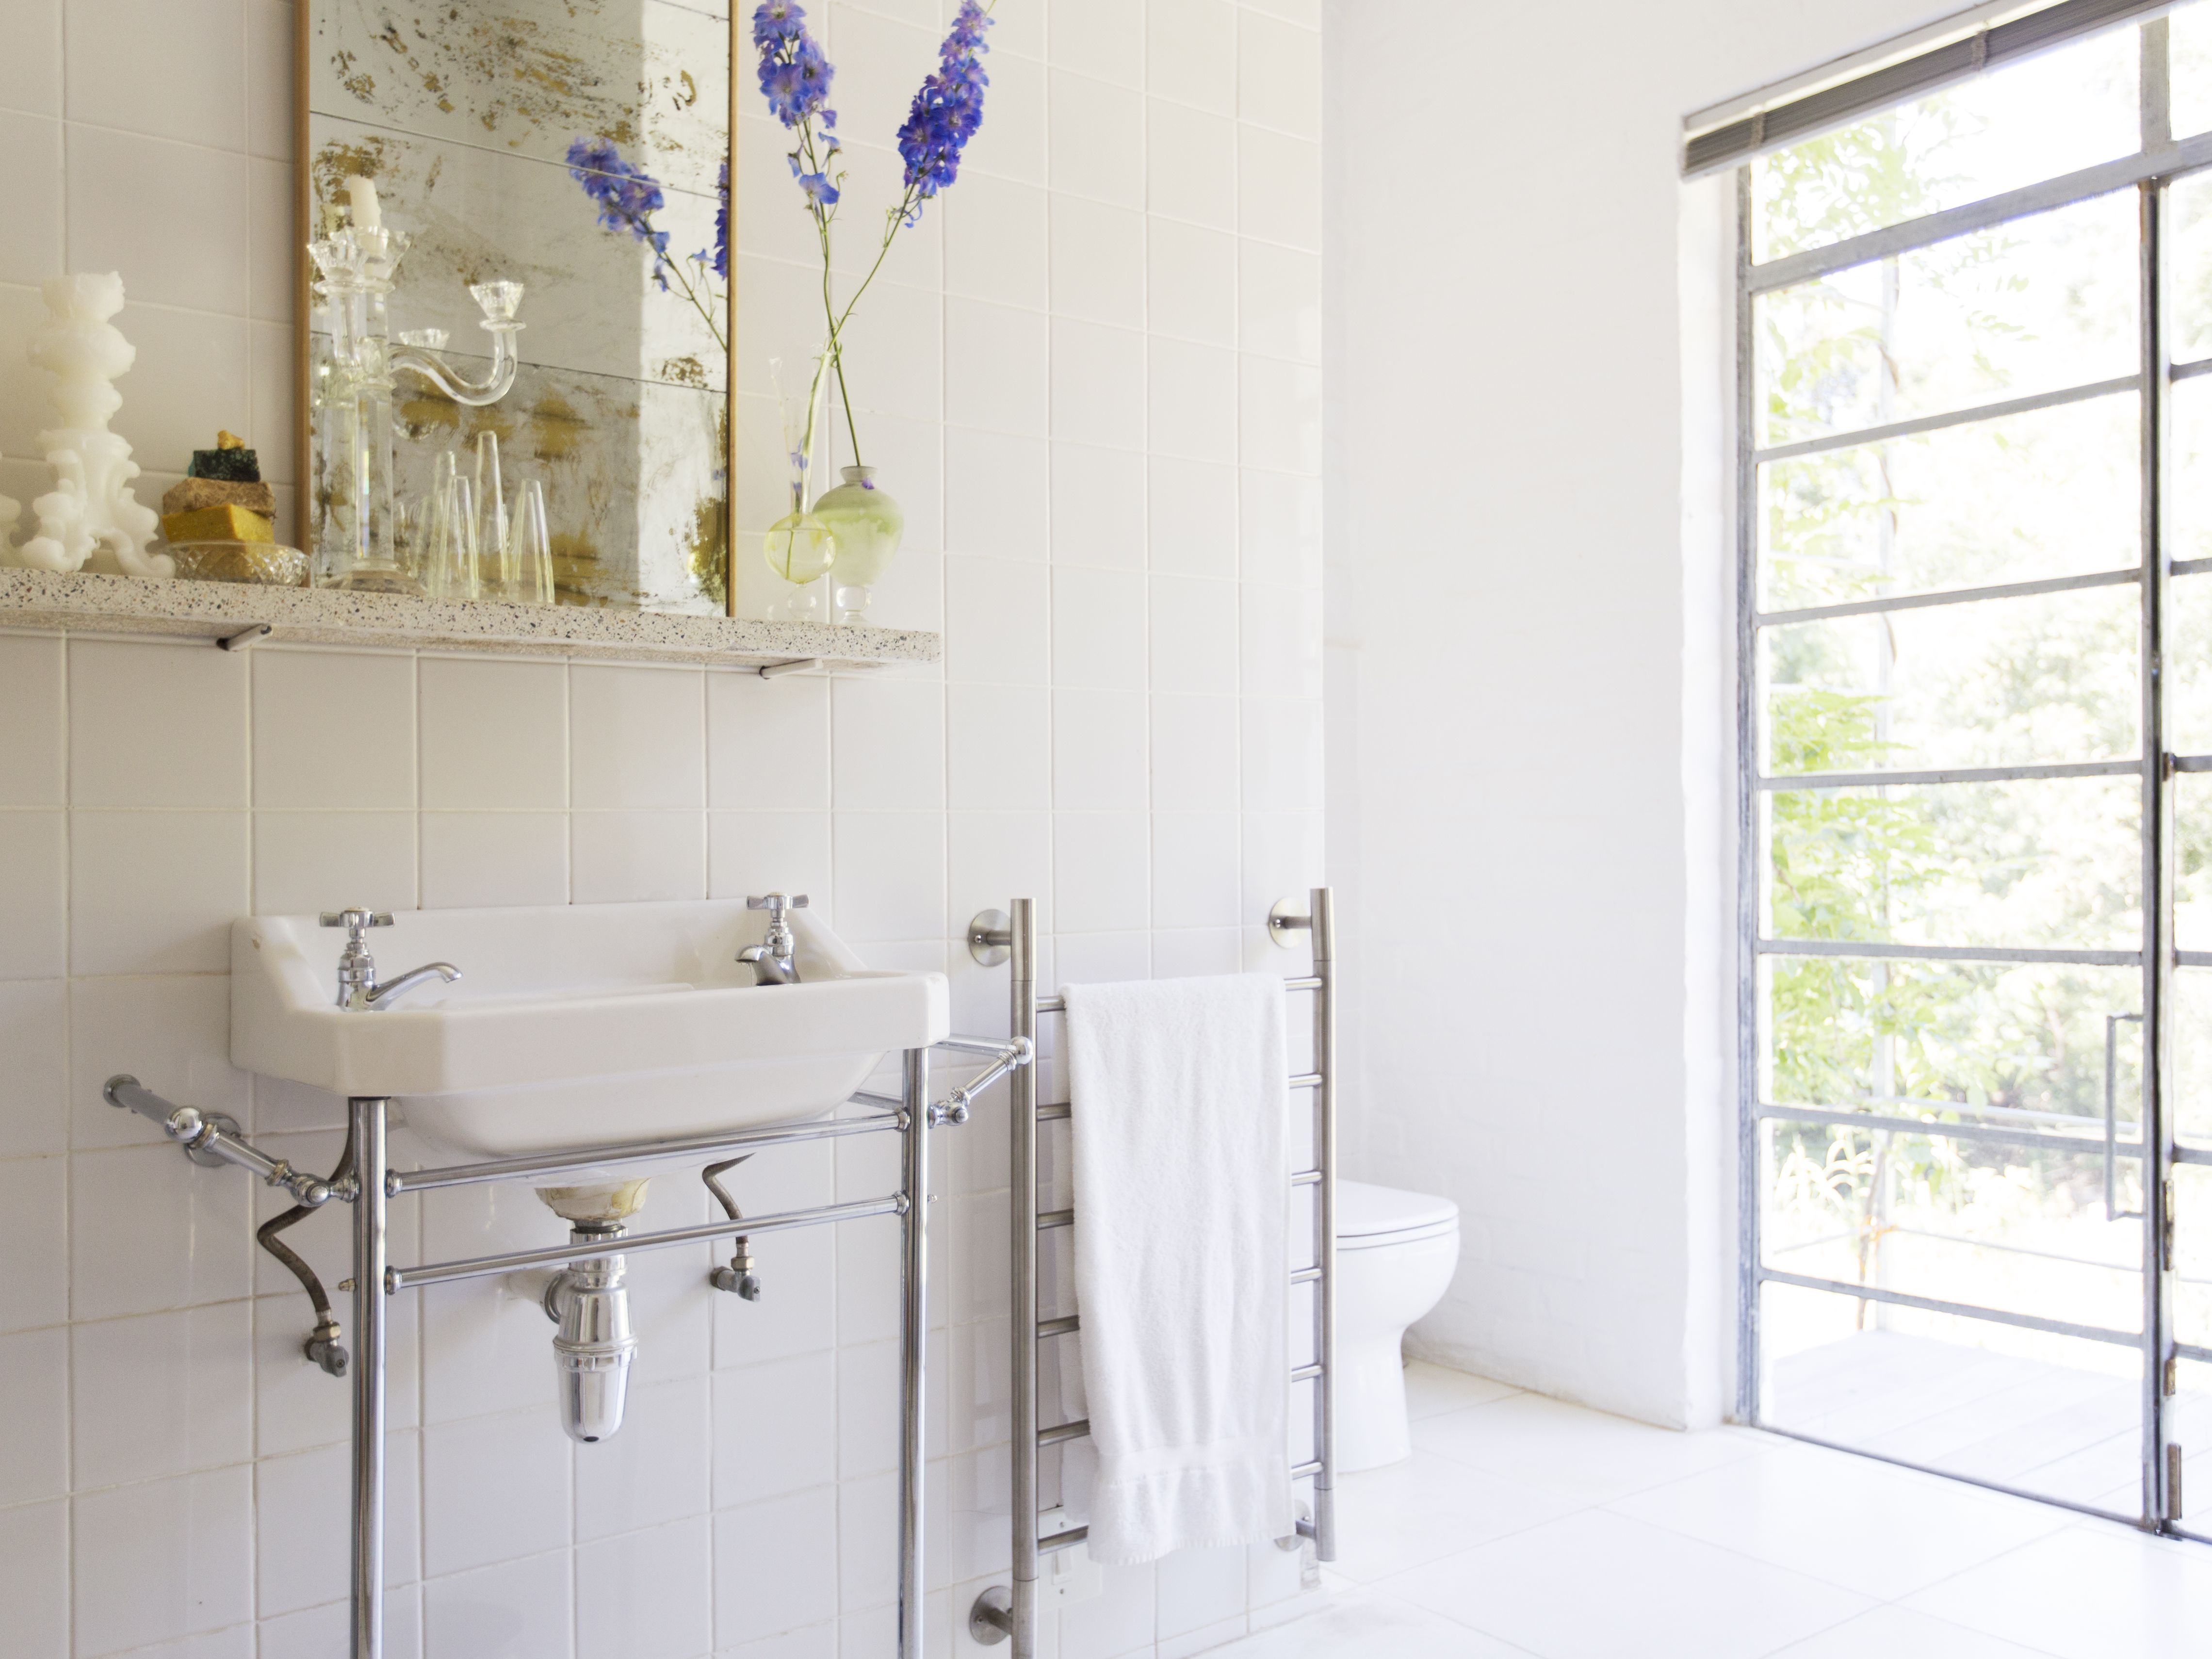 The 7 Best Towel Warmers of 2019